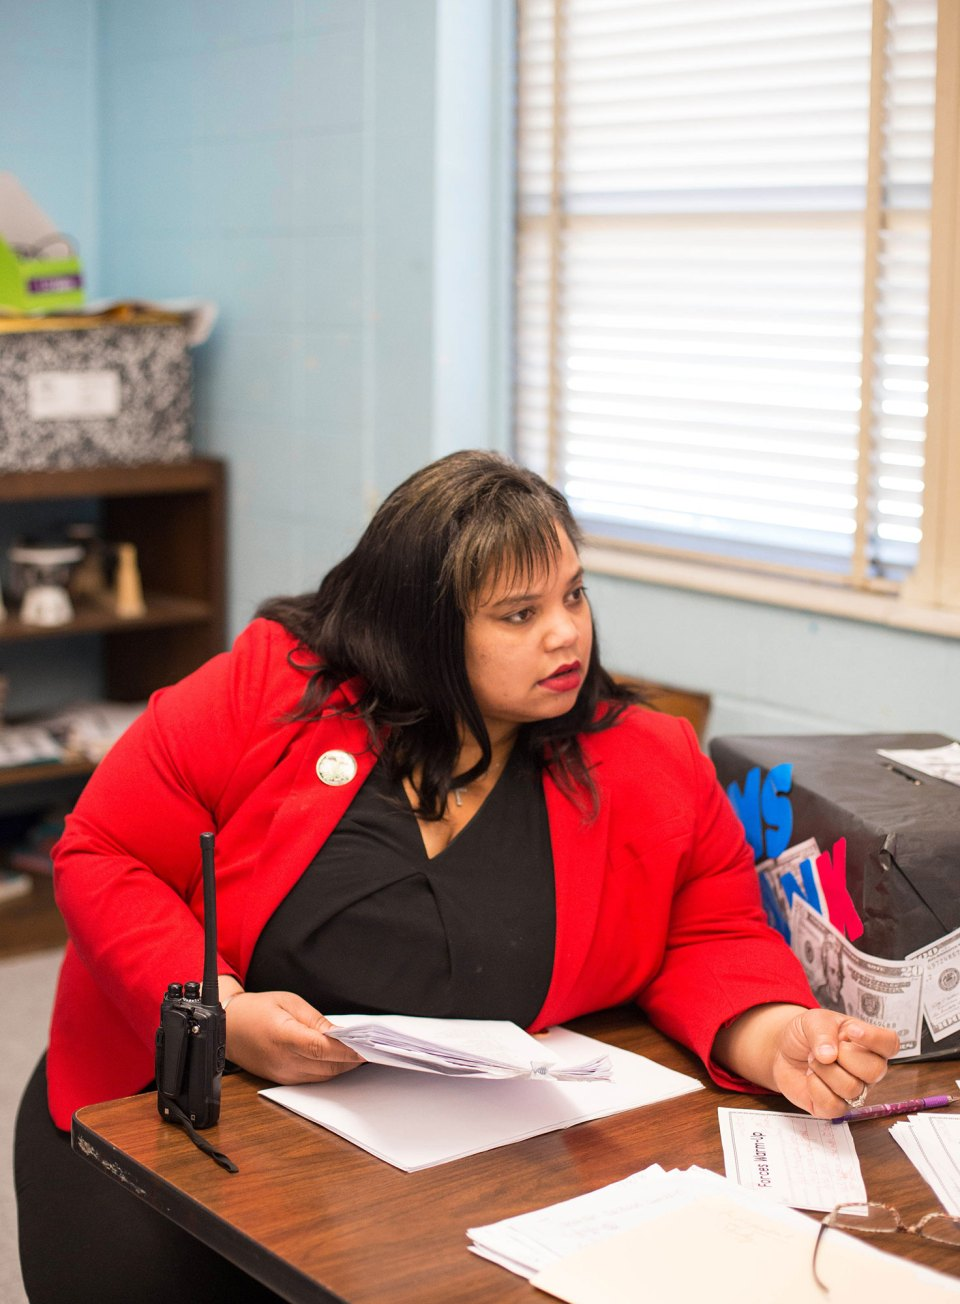 Principal Shimelle Mayers gave high marks to the two retired teachers who are among her staff this school year at Brinkley Middle School in Jackson.